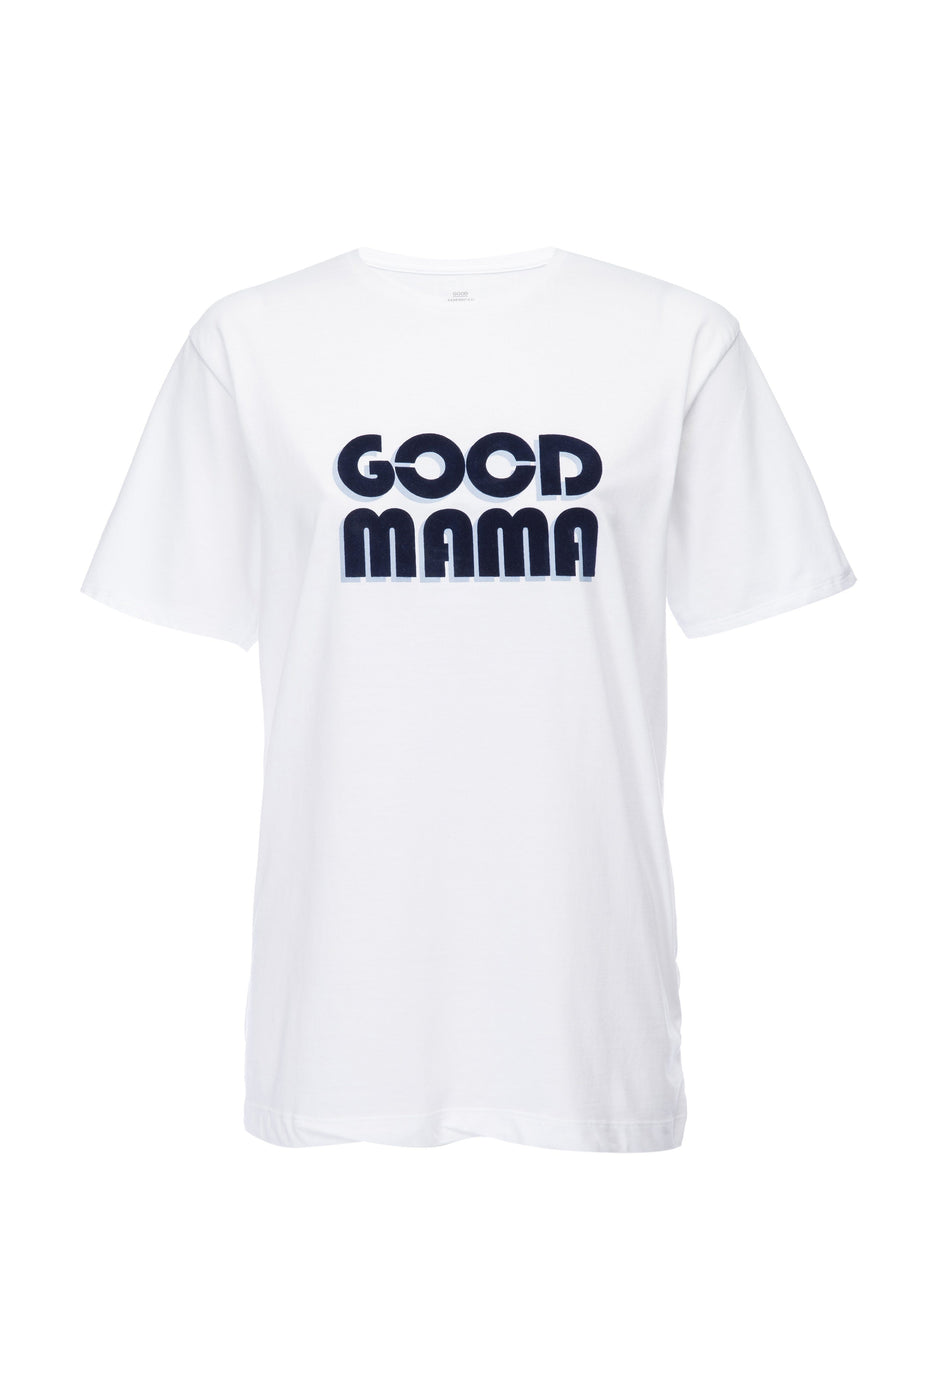 THE GOOD MAMA TEE | BLUE001